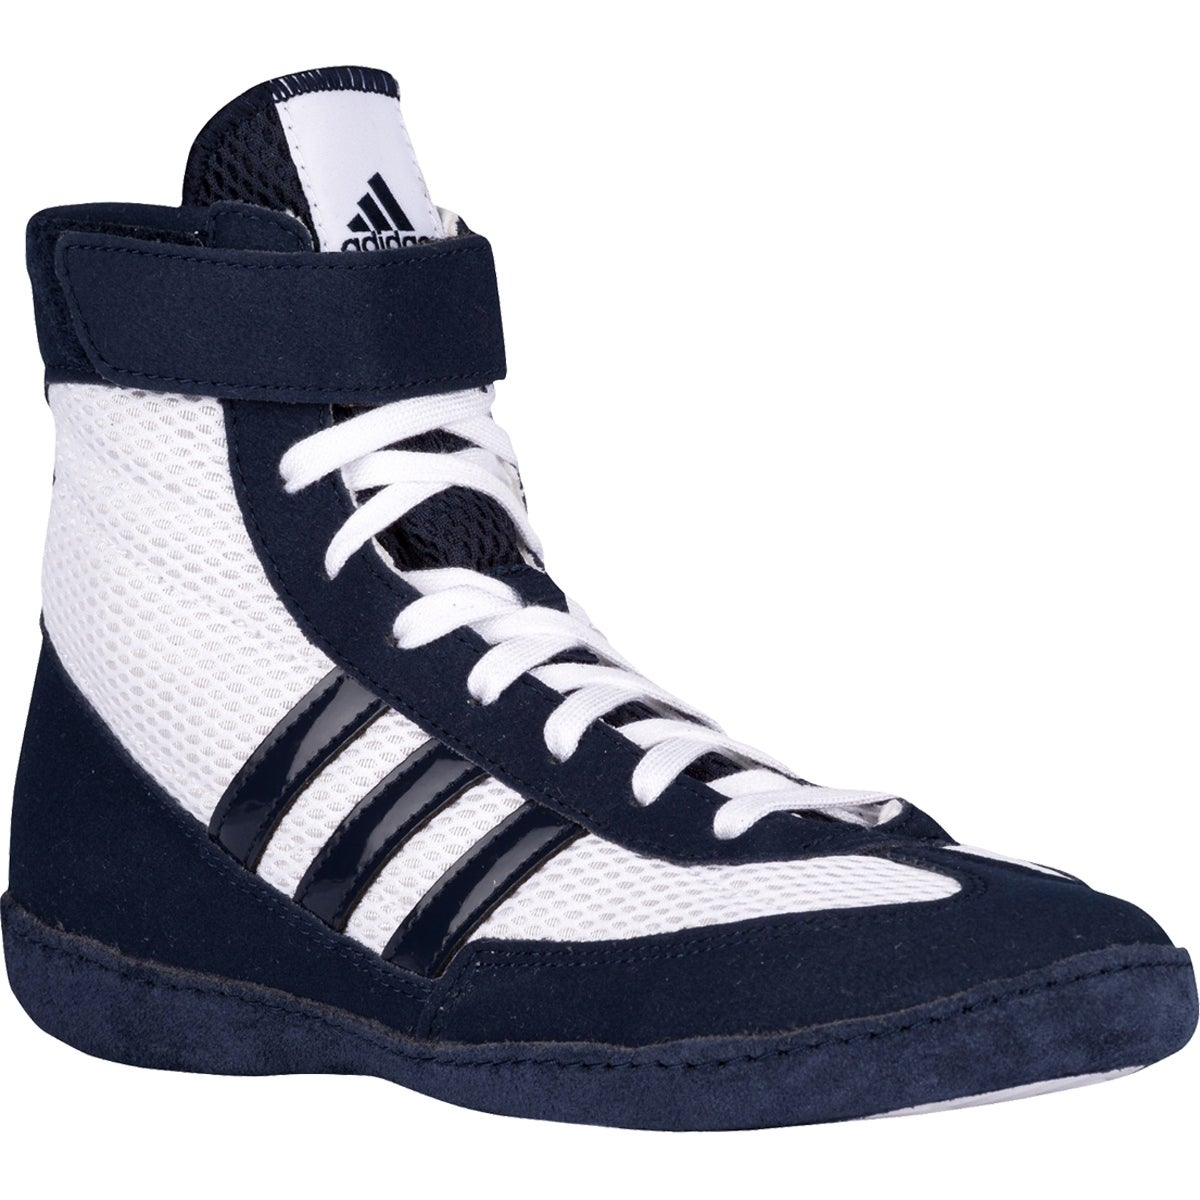 5c5fb61ec1f Shop Adidas Combat Speed 4 Youth Wrestling Shoes - White Navy - Free  Shipping Today - Overstock - 16629704